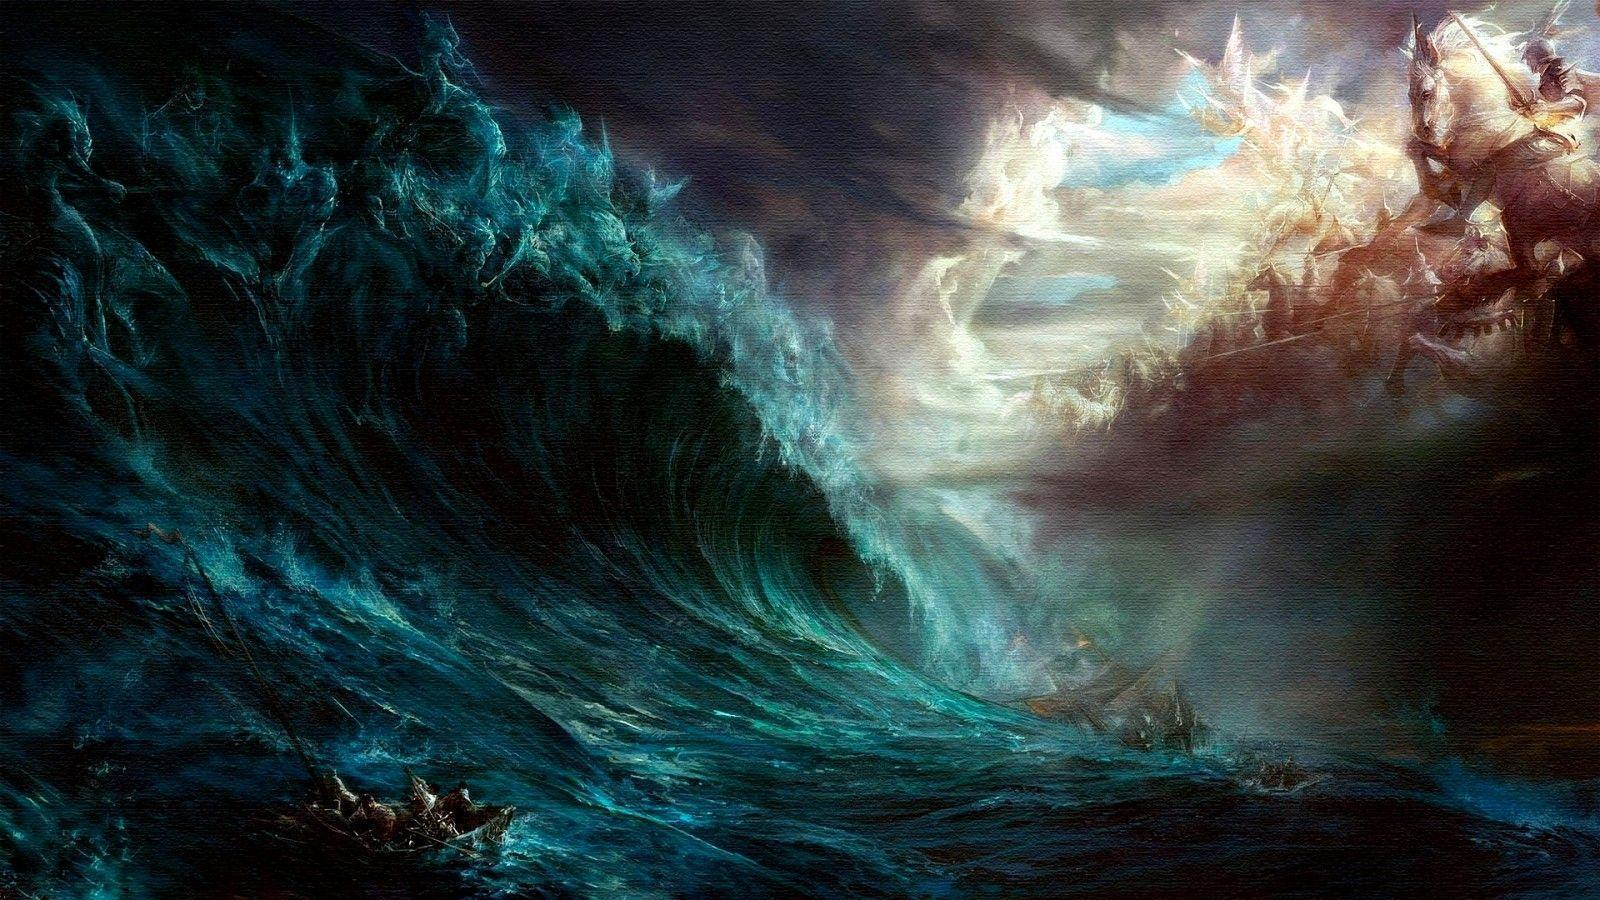 Tsunami pictures hd wallpaper 7 hd wallpapers | Chainimage